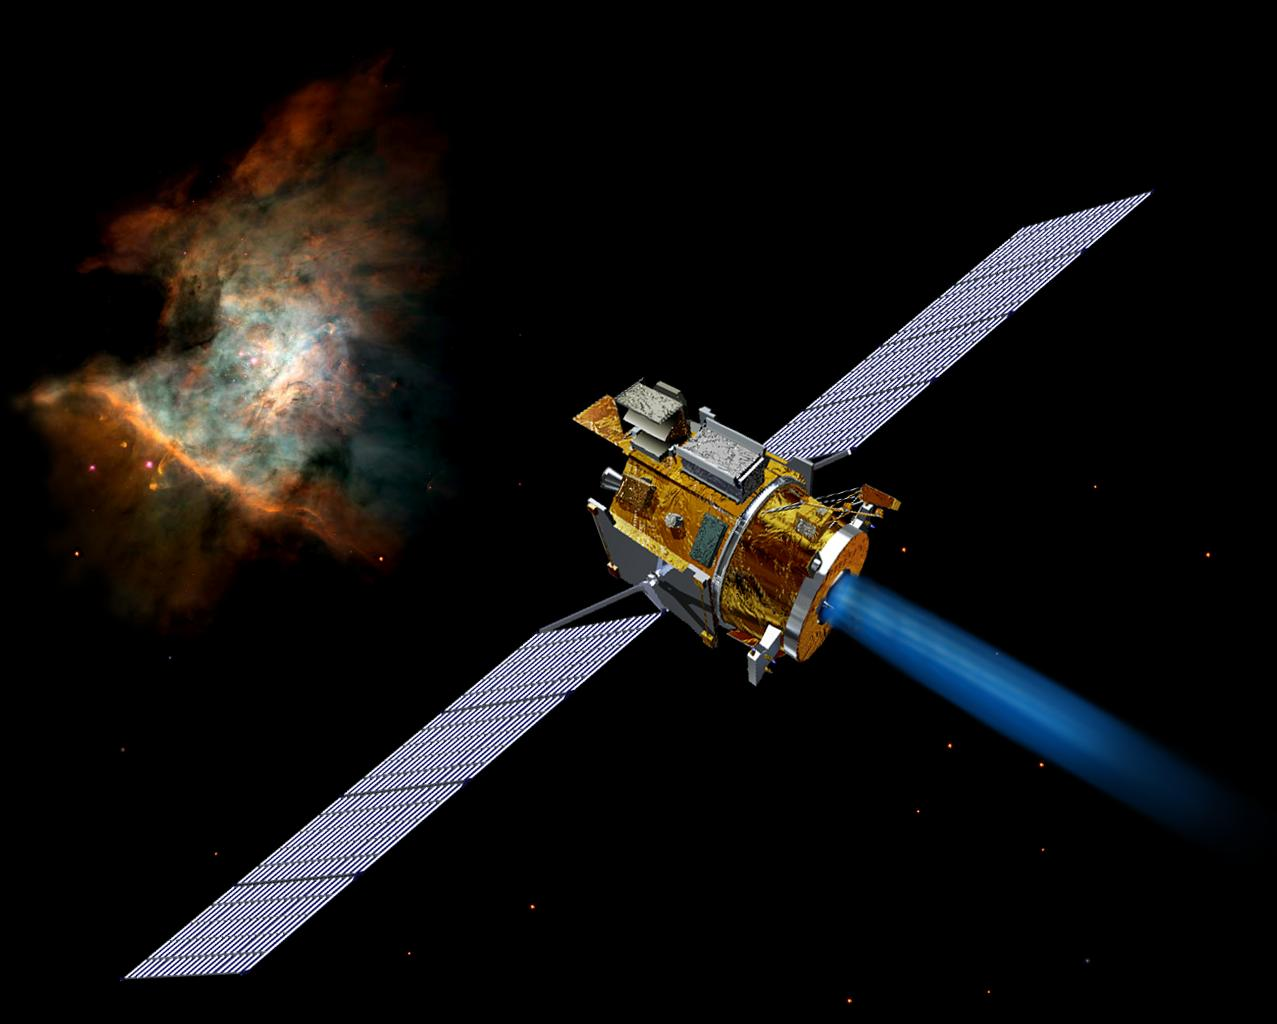 Artist's concept of the Deep Space 1 spacecraft from December, 2002.